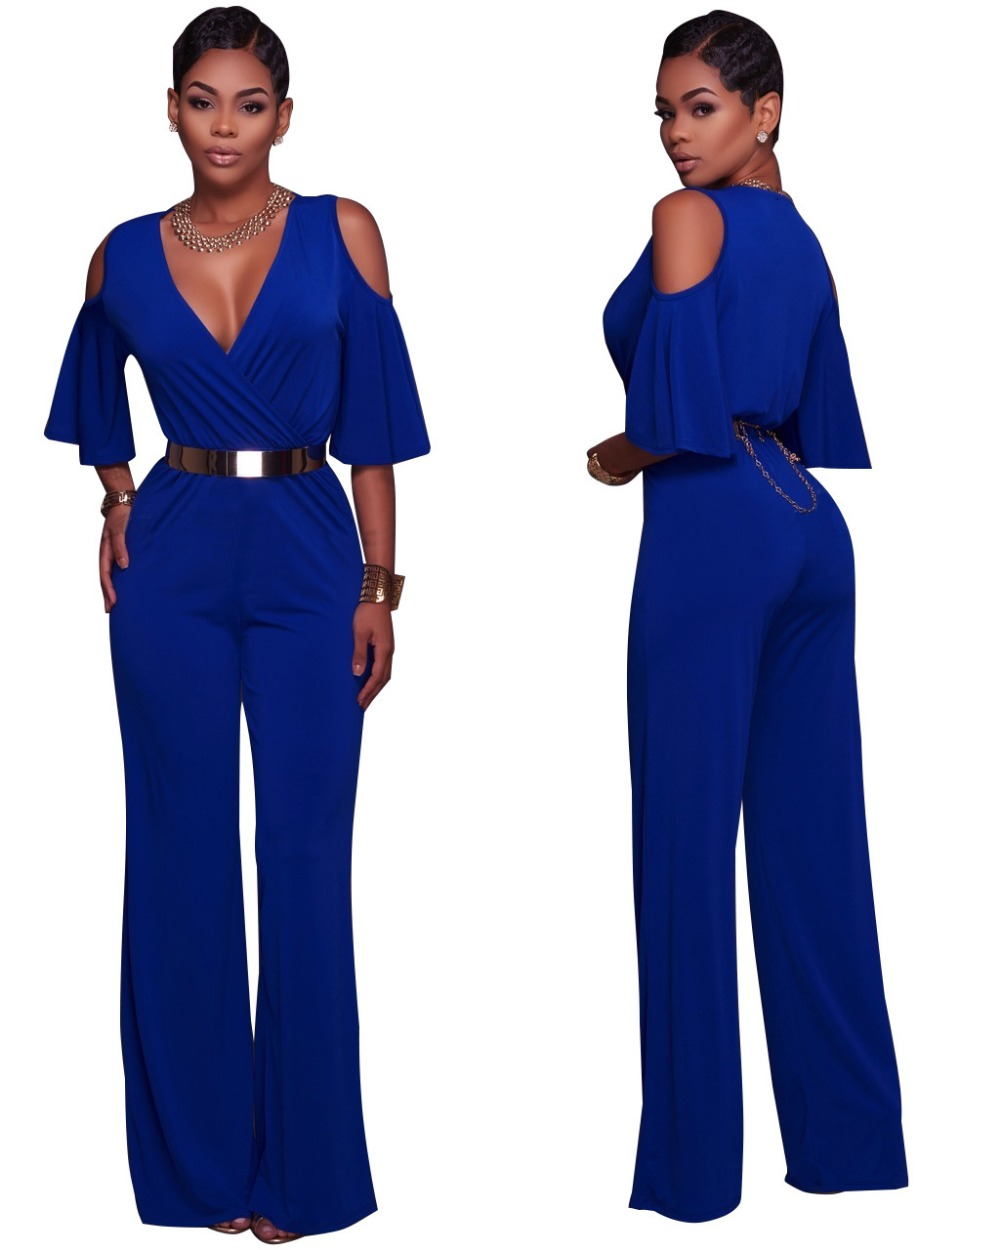 6afe8f36c7 New 2017 Jumpsuit Women Sexy Night Club Fashion Cleavage Solid Strapless  Hot Models 3 Colors Overalls Long Pant With Belt A0266-in Jumpsuits from  Women s ...